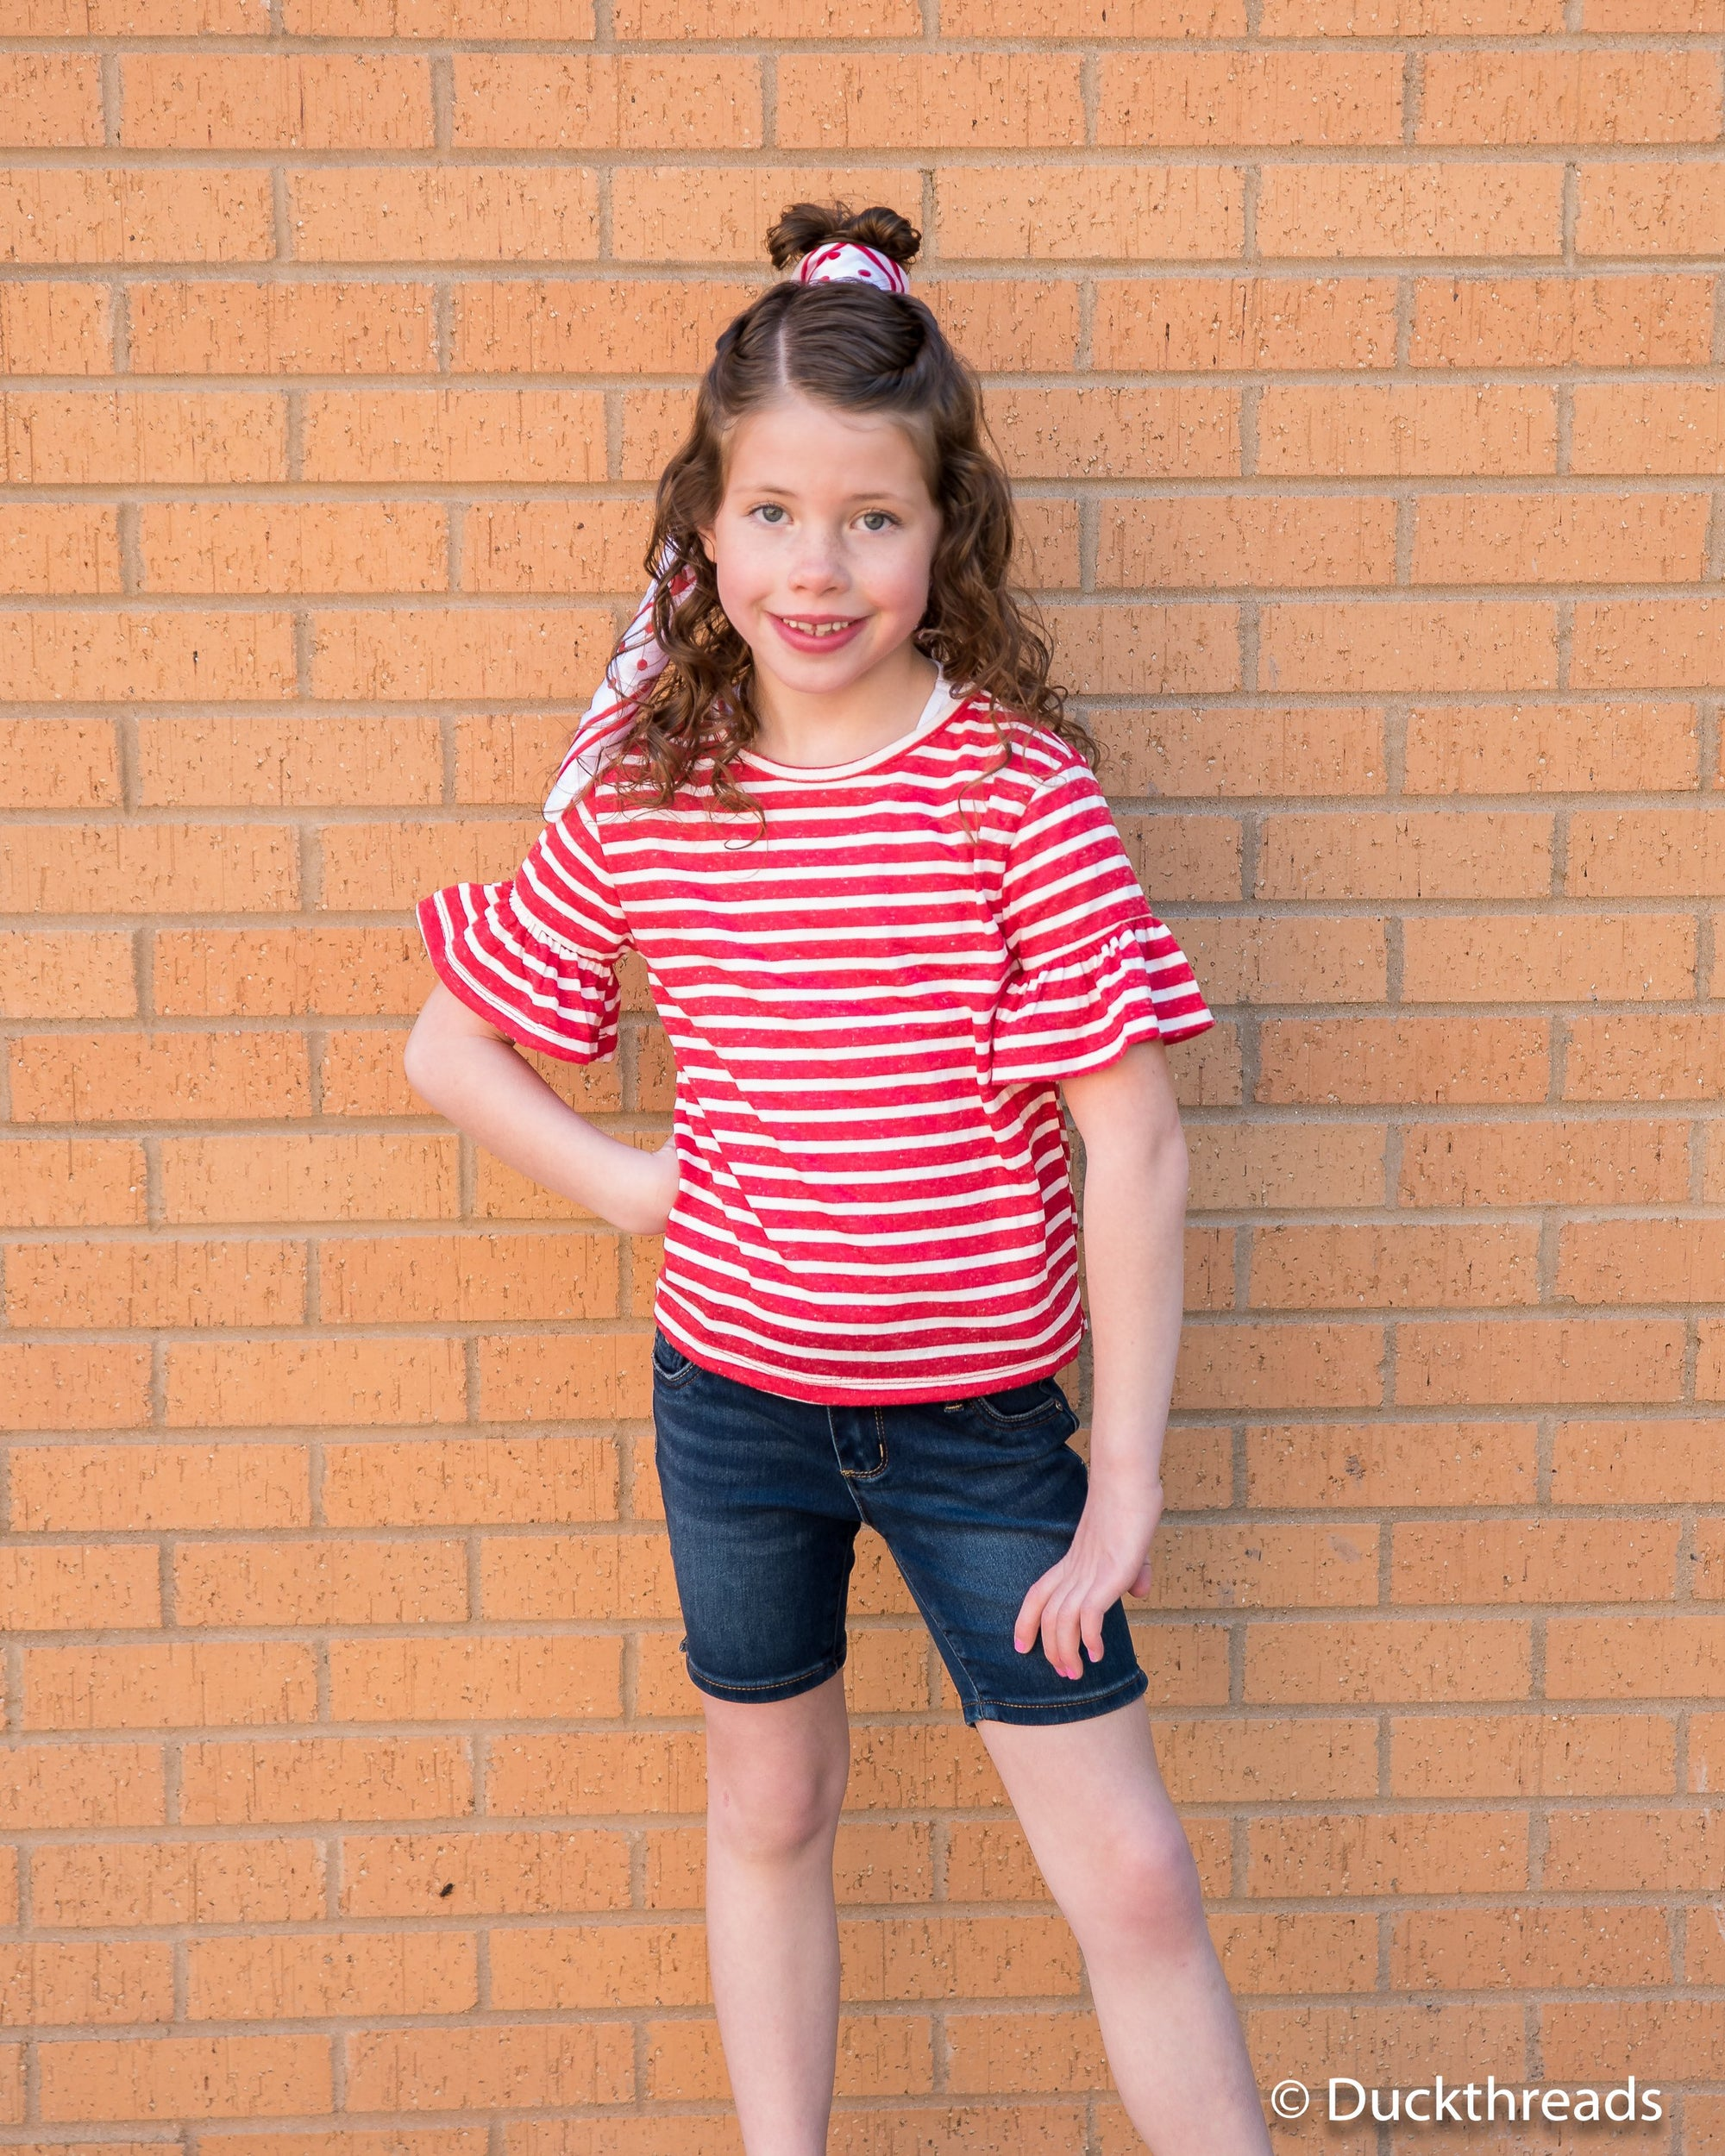 Tractr Girls Bermuda Shorts Duckthreads